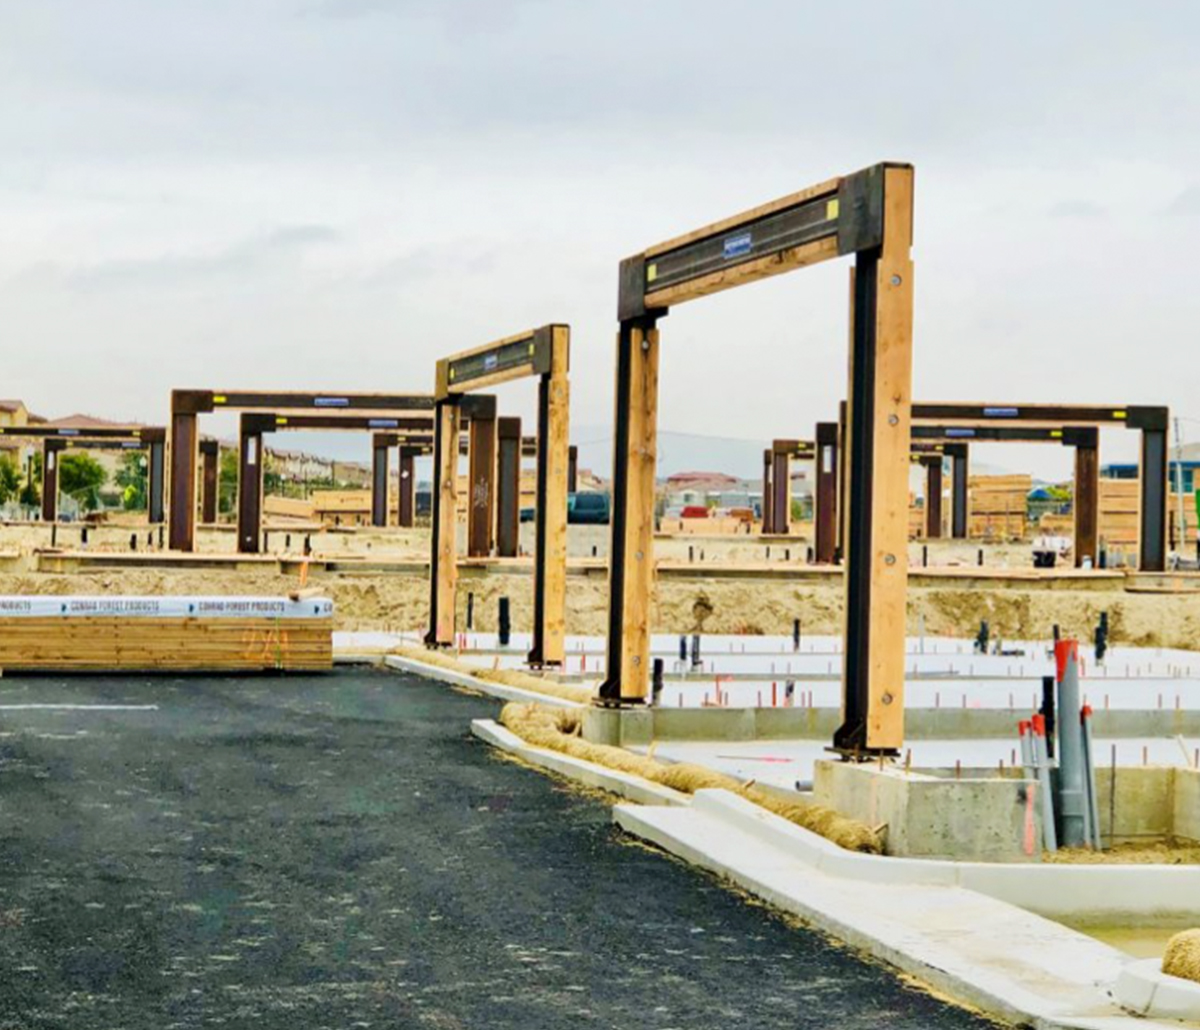 MiTek Moment Frames Engineered Systems Products - Series of Moment Frames installed at a jobsite